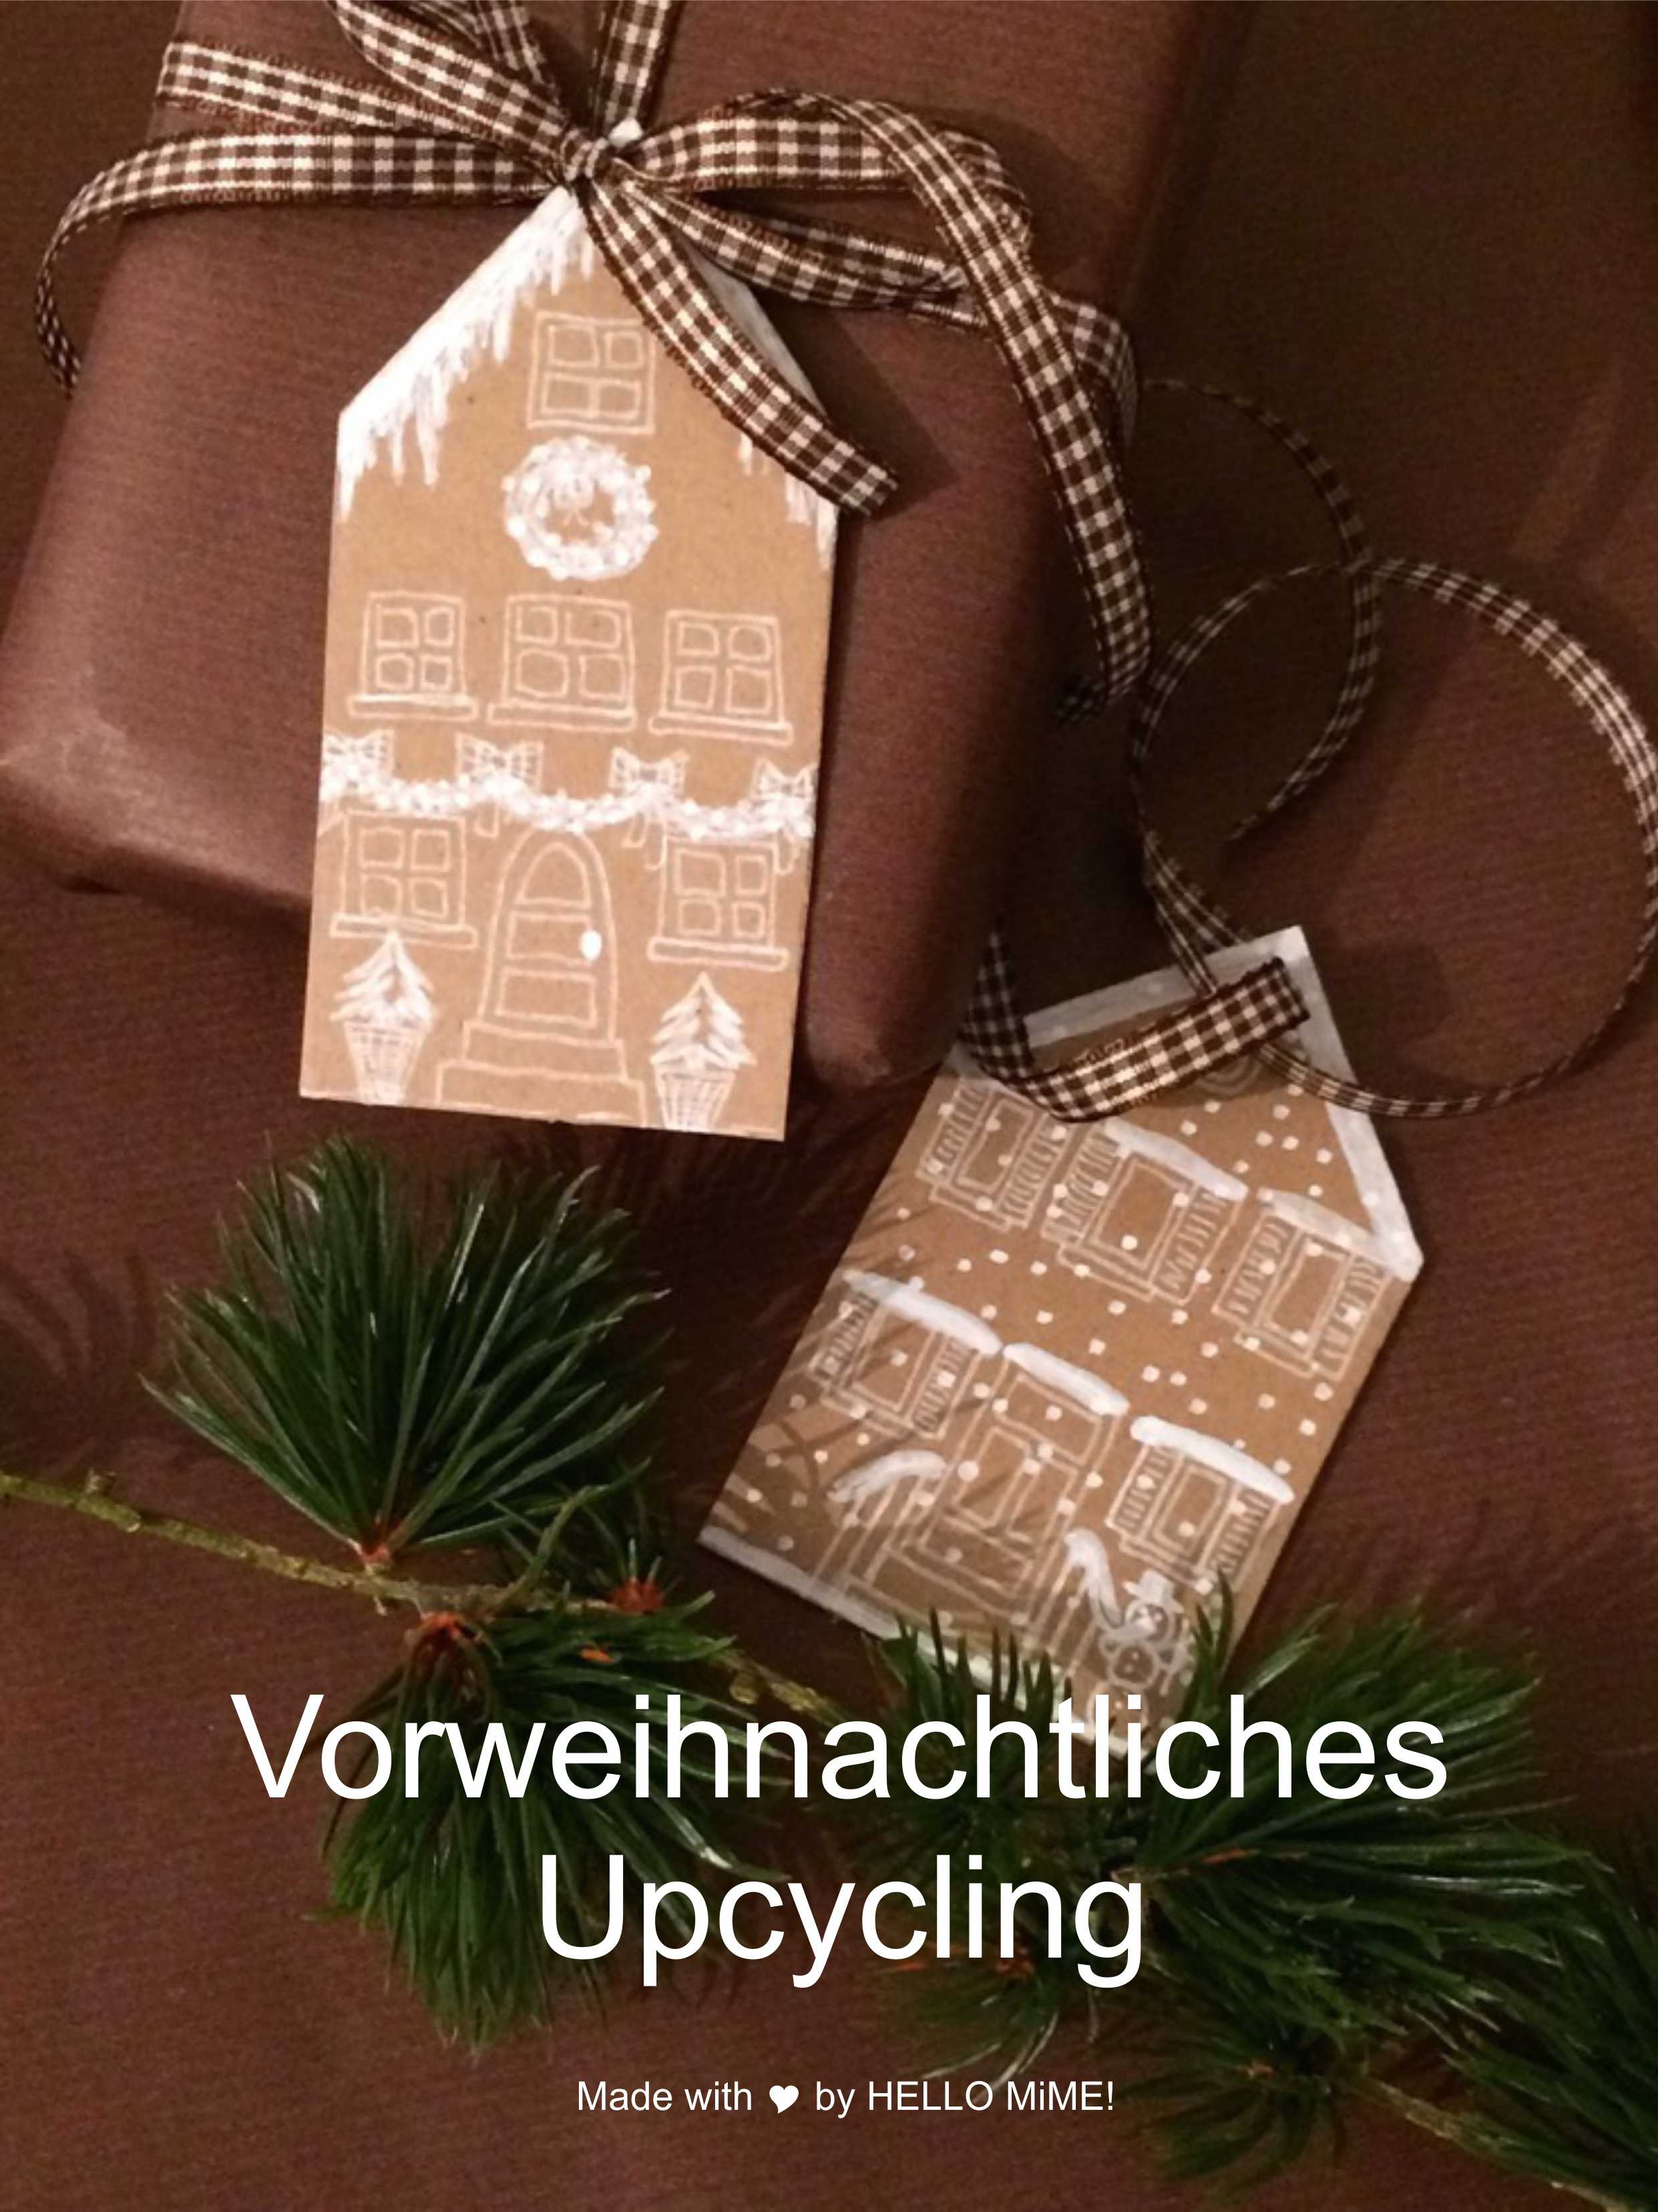 Upcycling Pappkartons